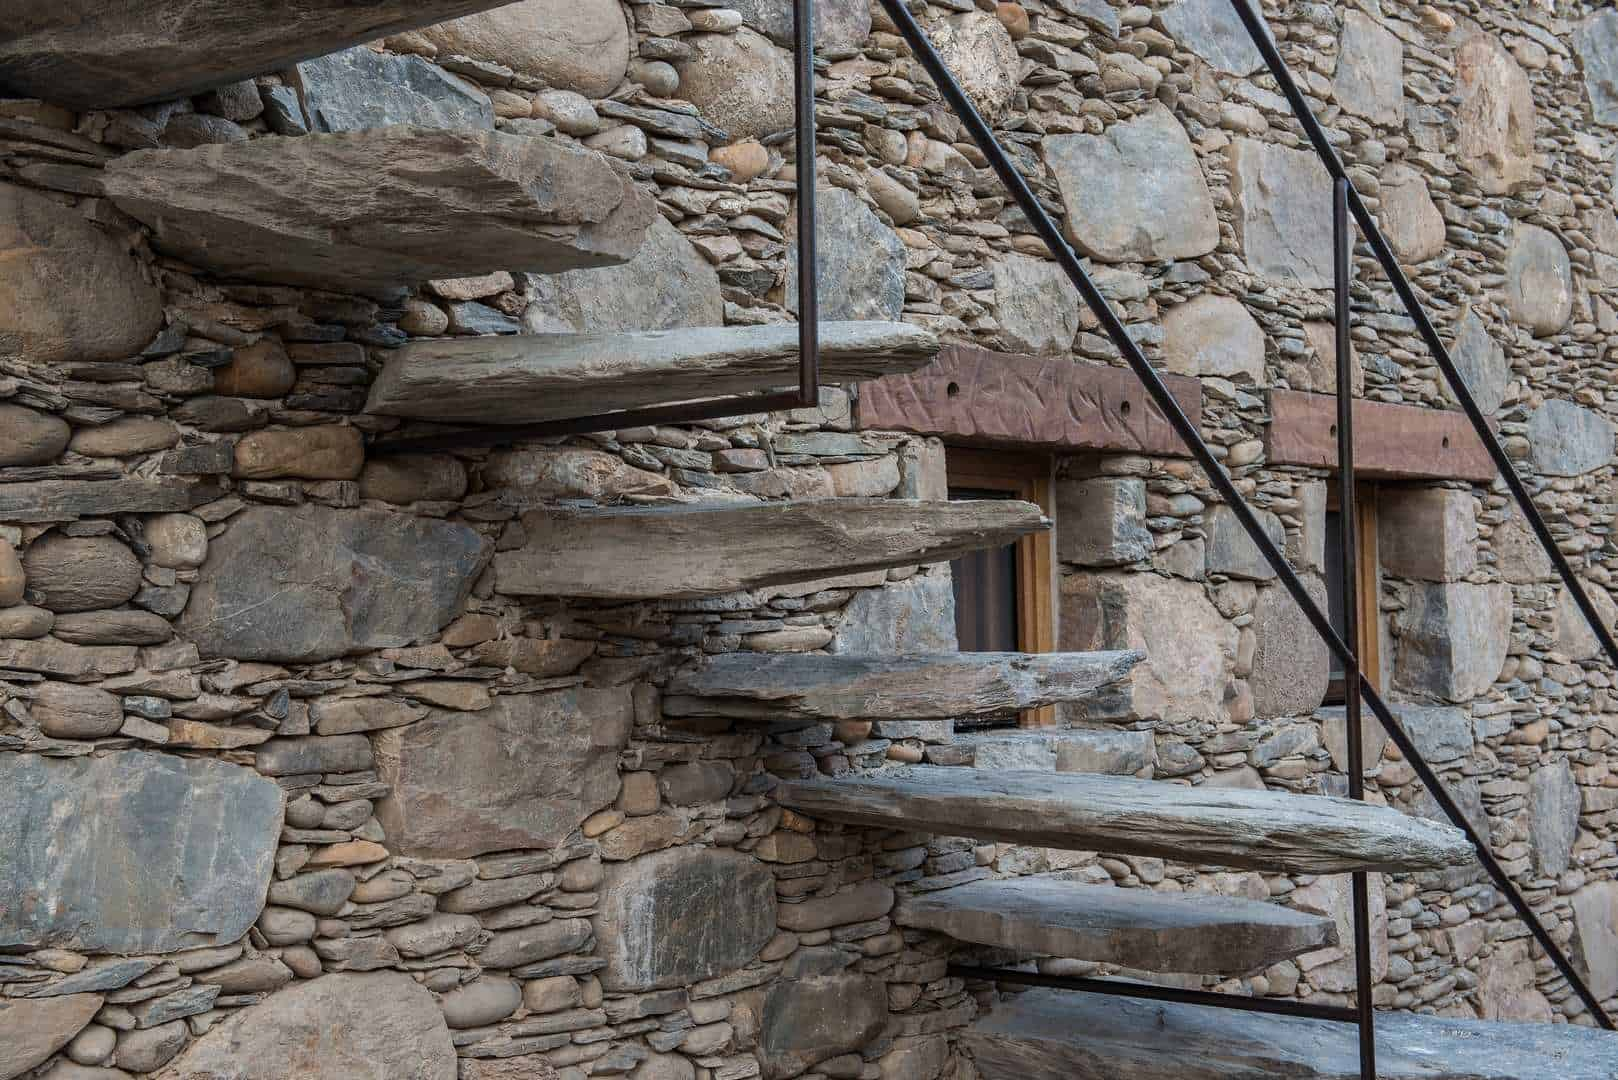 Architectural details – The Old Beach House